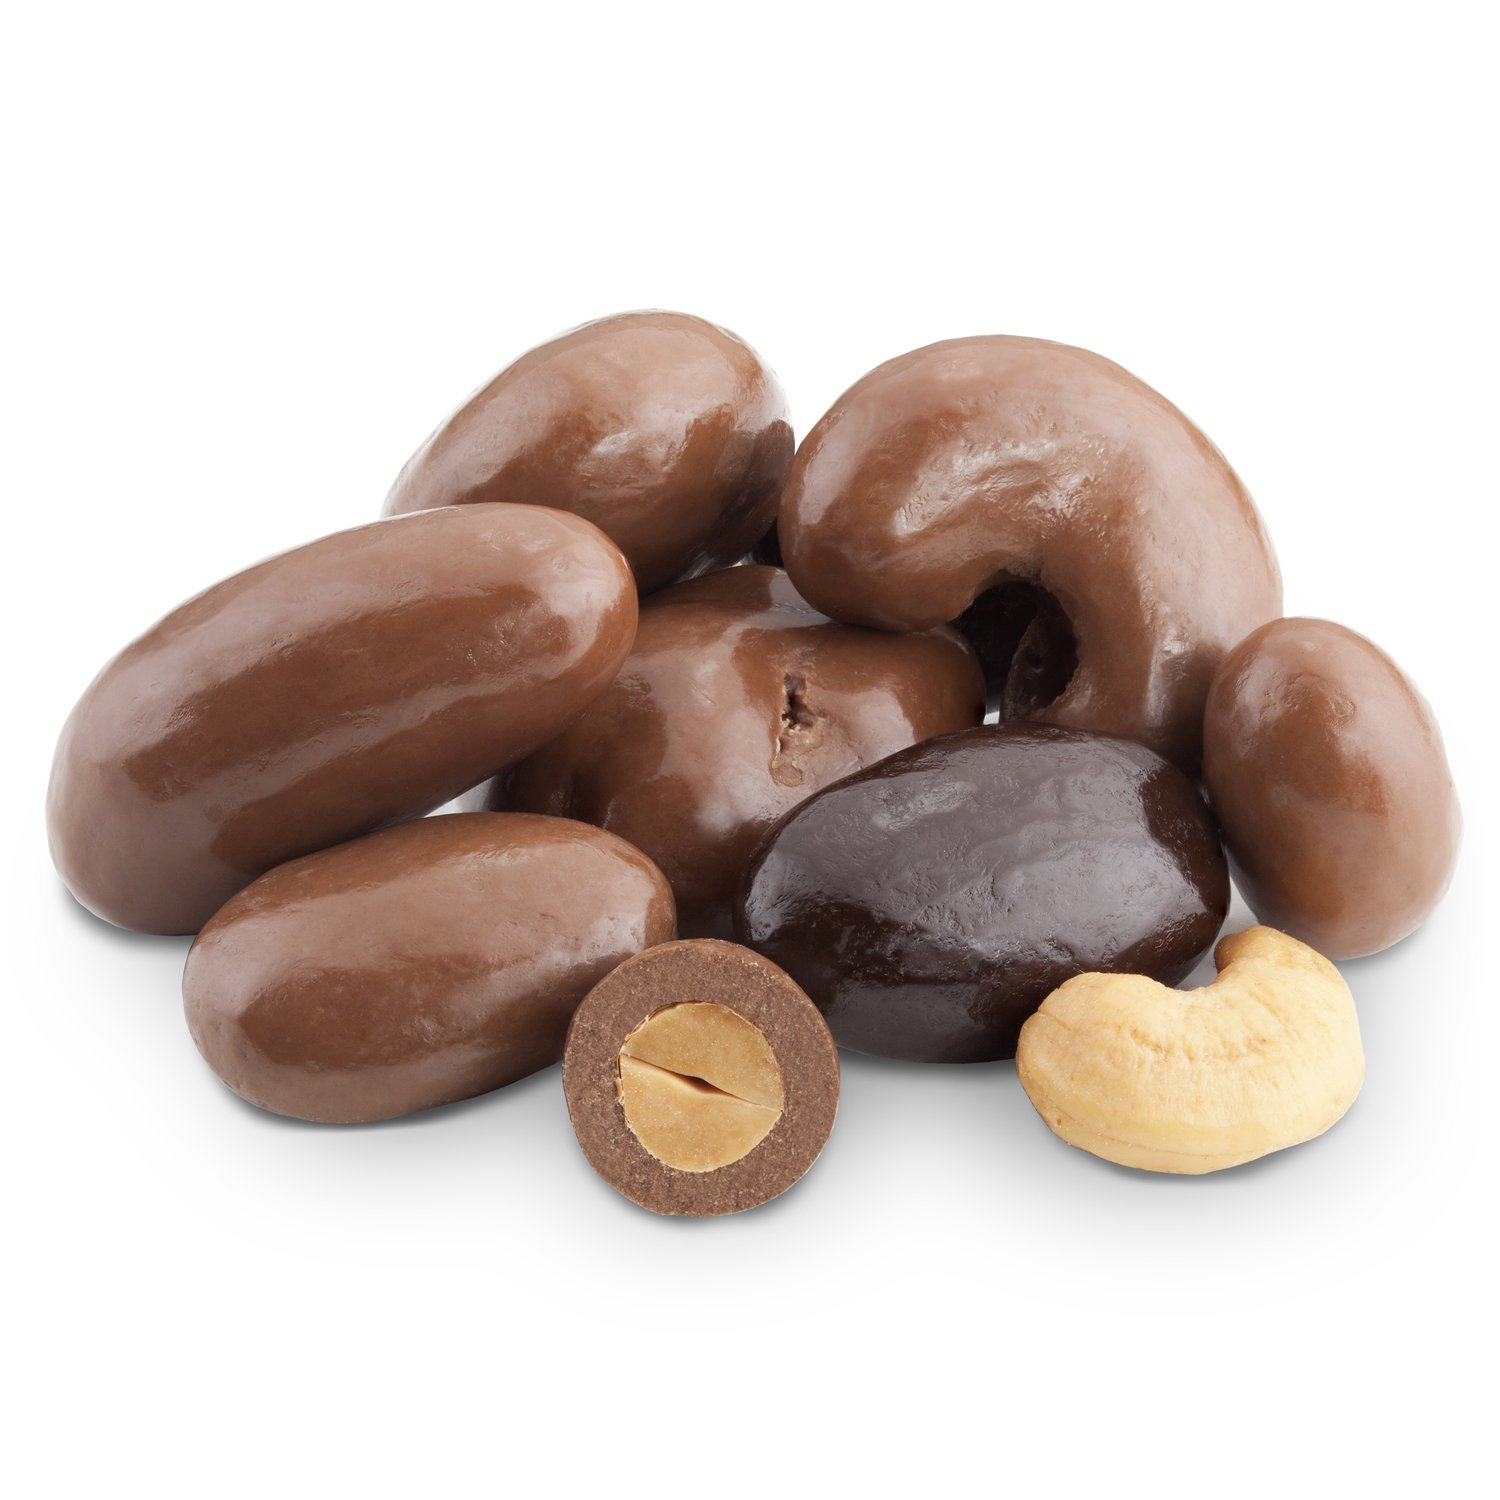 How To Make Chocolate Covered Walnuts